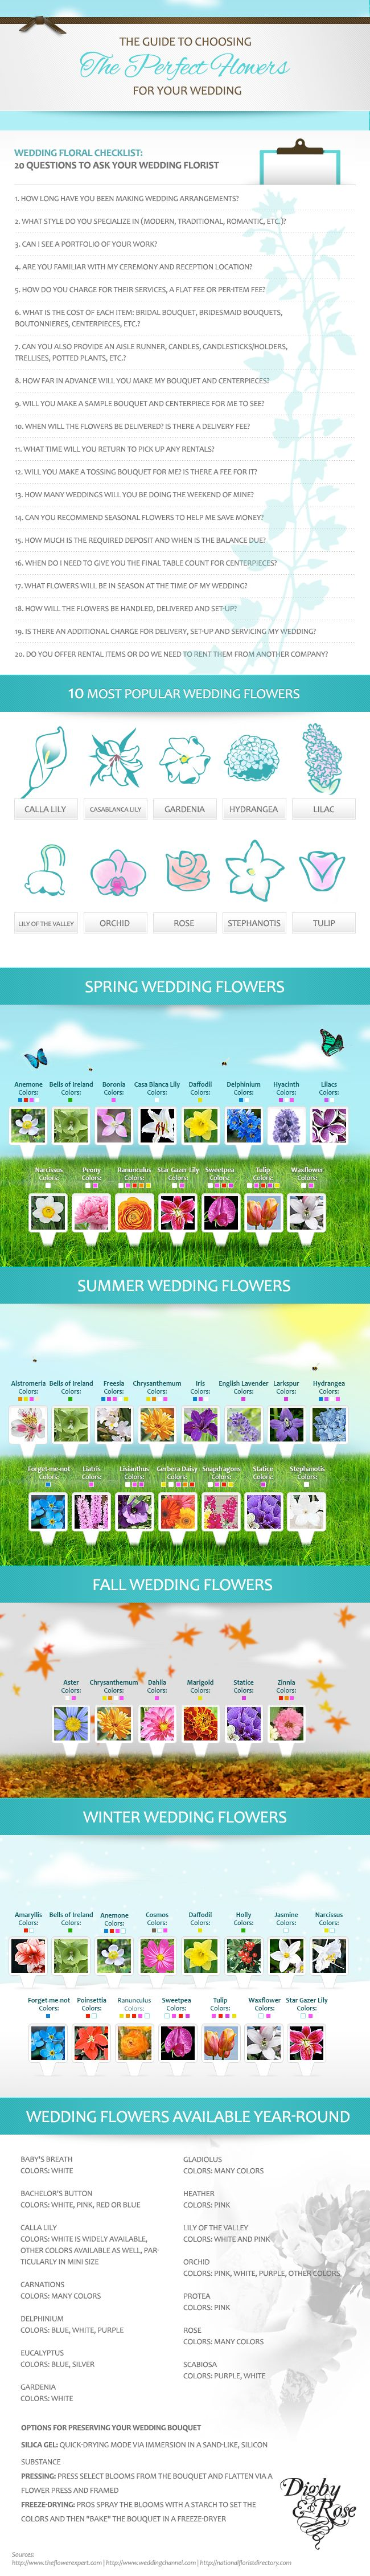 Digby & Rose Brings You The Complete Guide To Choosing The Perfect Flowers For Your Wedding #weddings #weddingflowers #weddingplanning